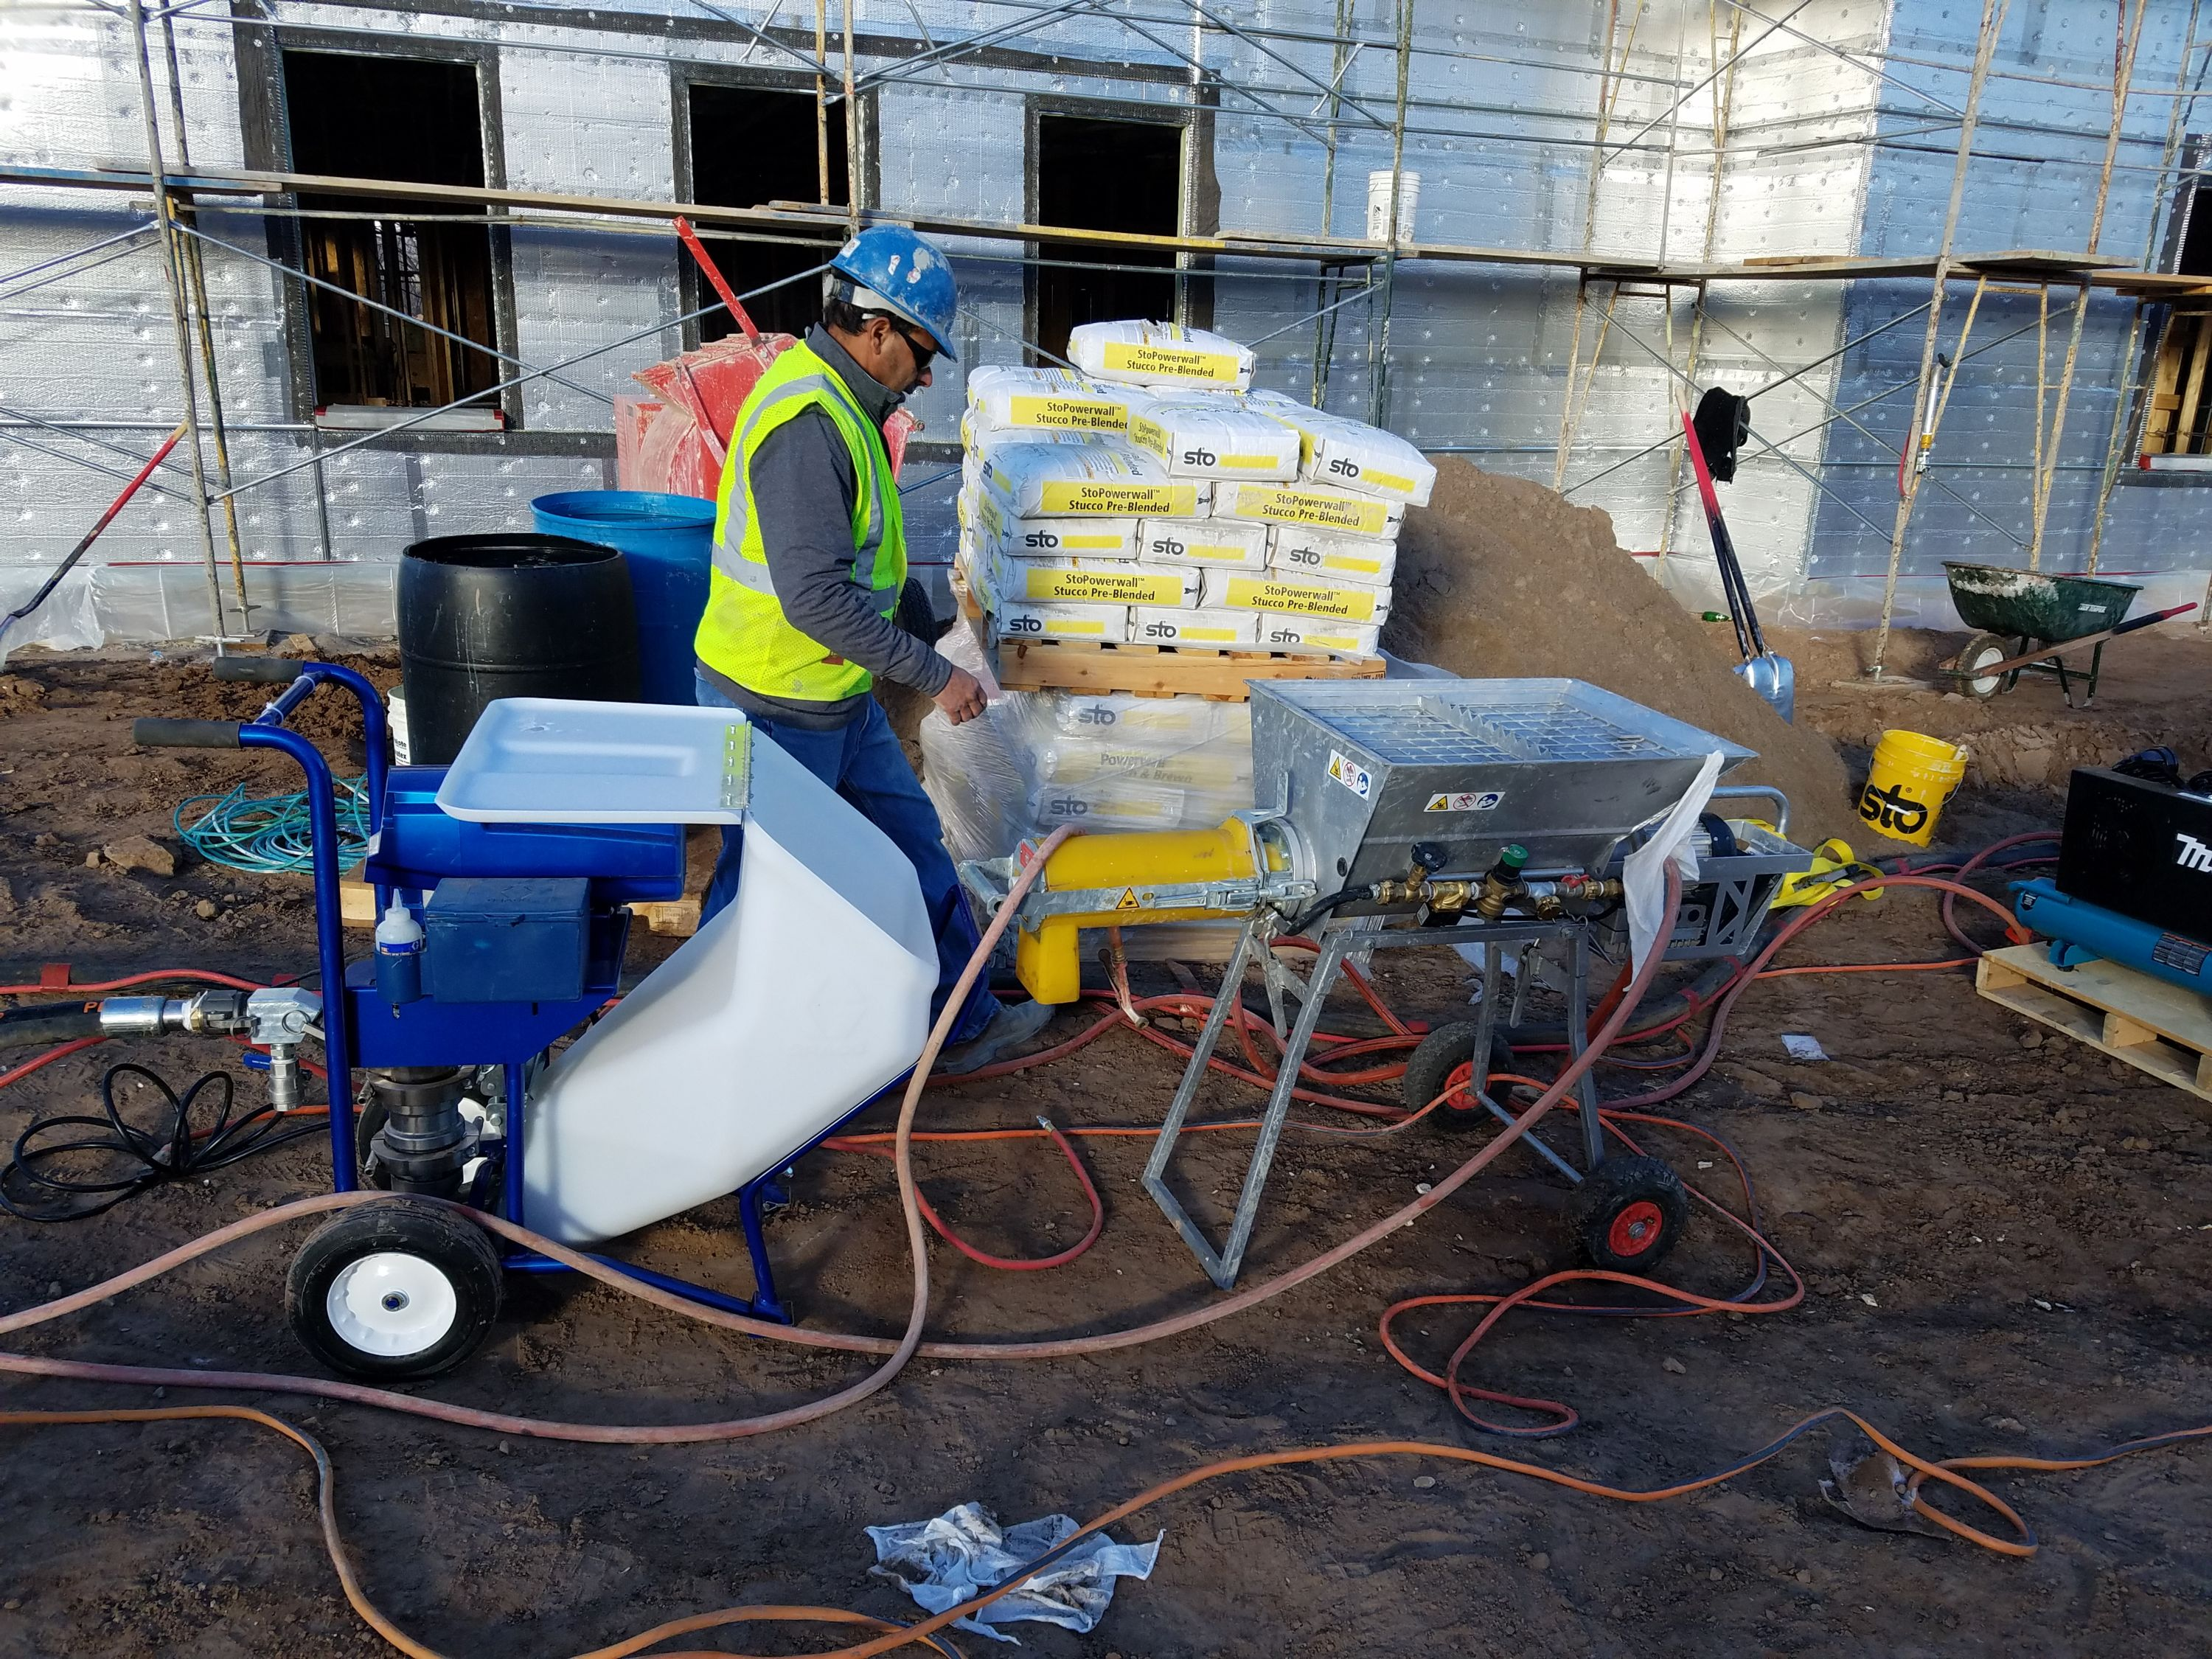 Danny Carillo preparing for applying concrete to the walls using a Graco Sprayer.